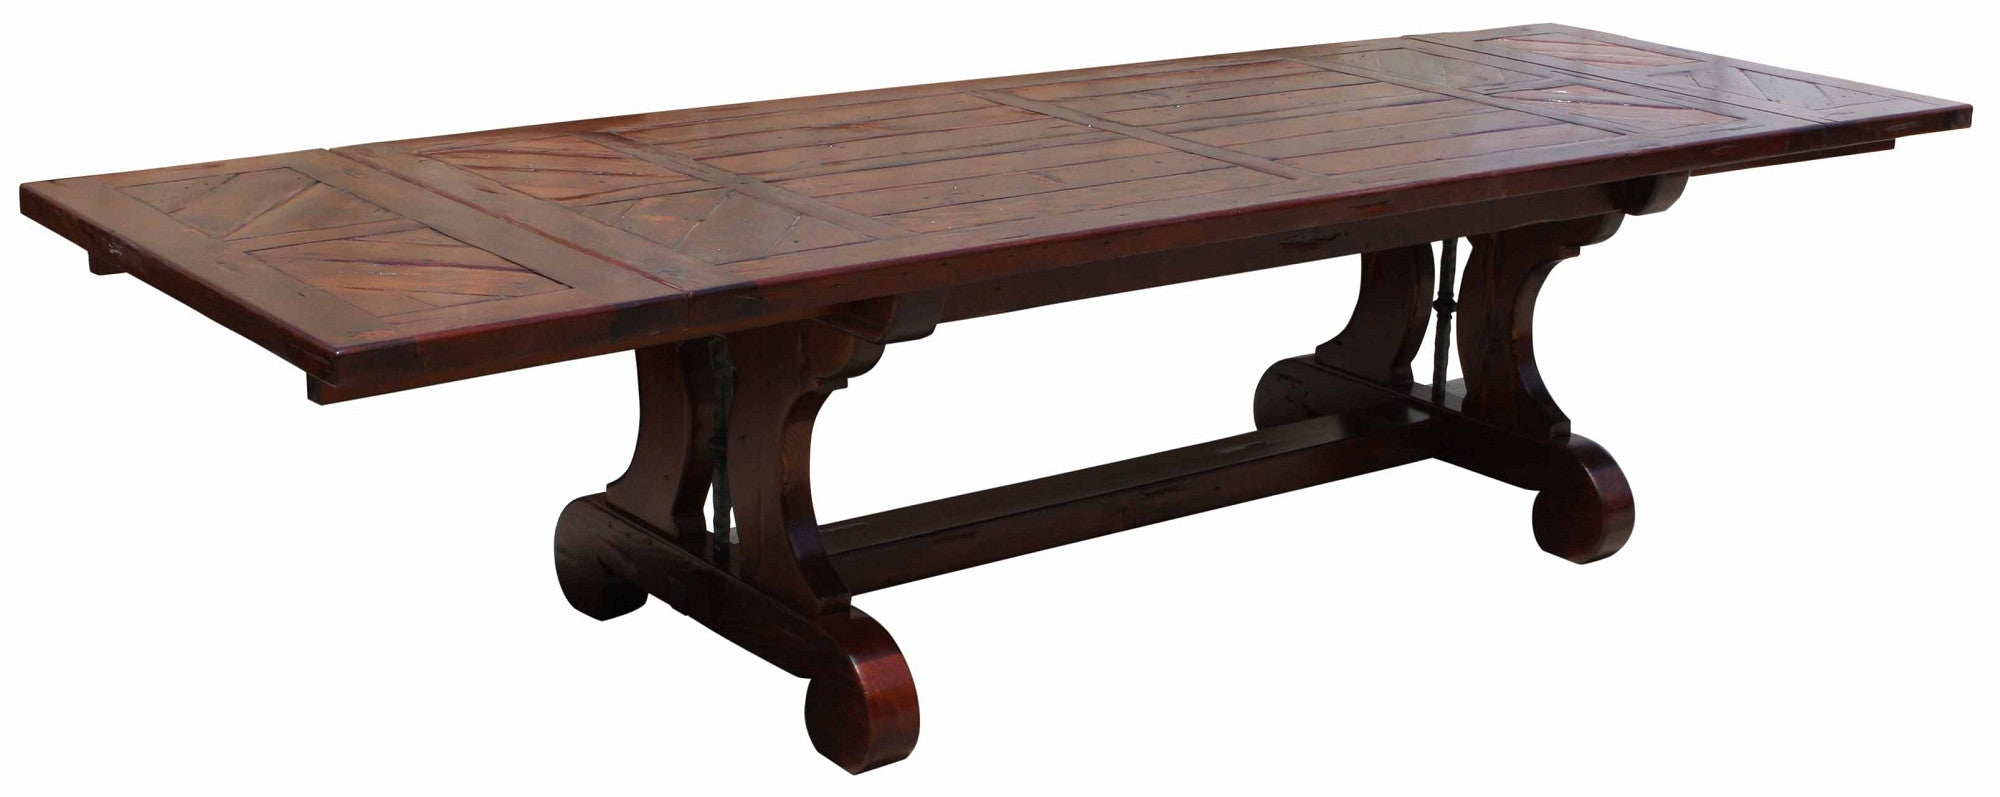 Dining tables page 2 mortise tenon for Table exterieur lourde